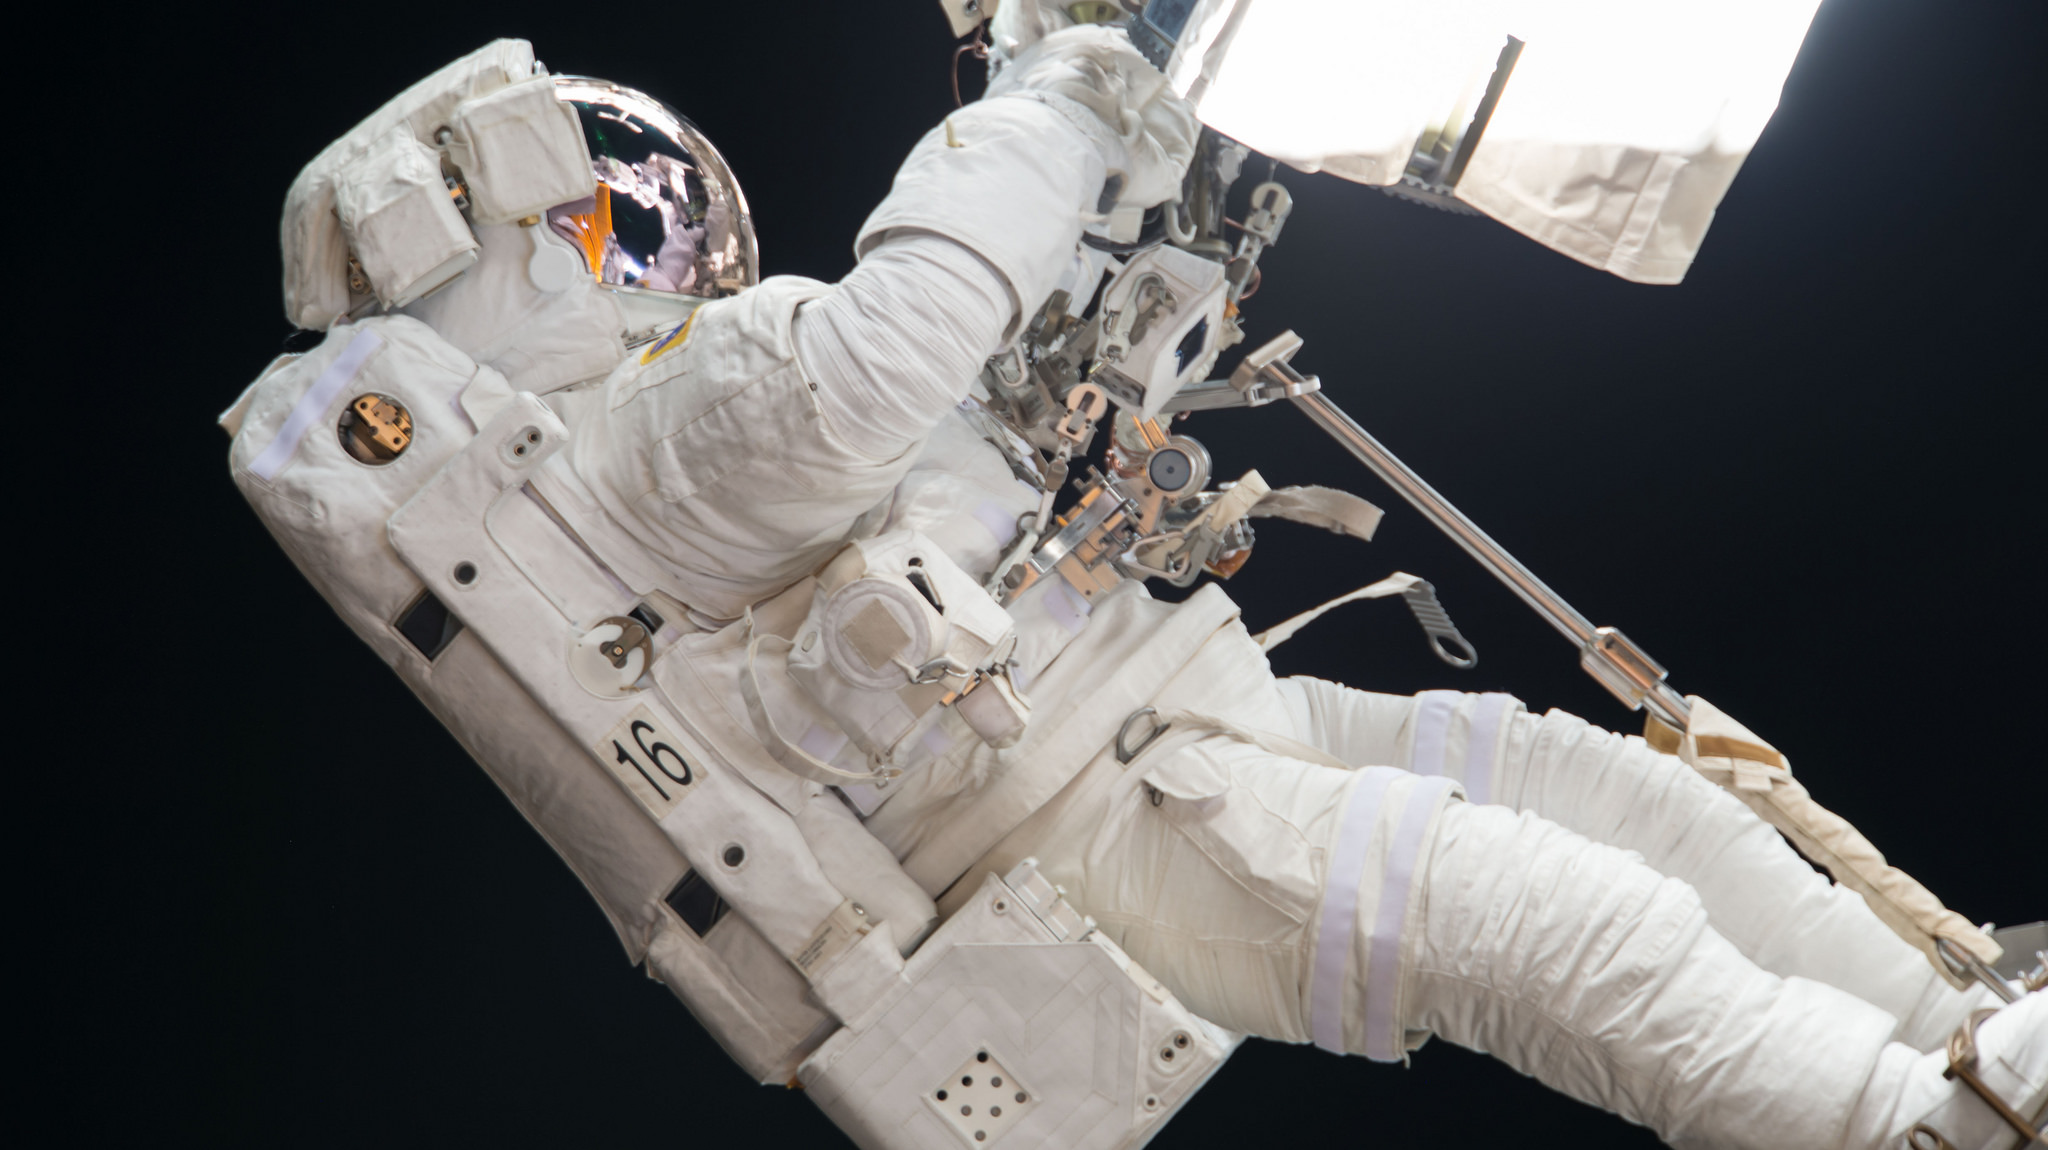 Joe Acaba works on the robotic Canadarm2 during U.S. EVA-46. Credit: NASA